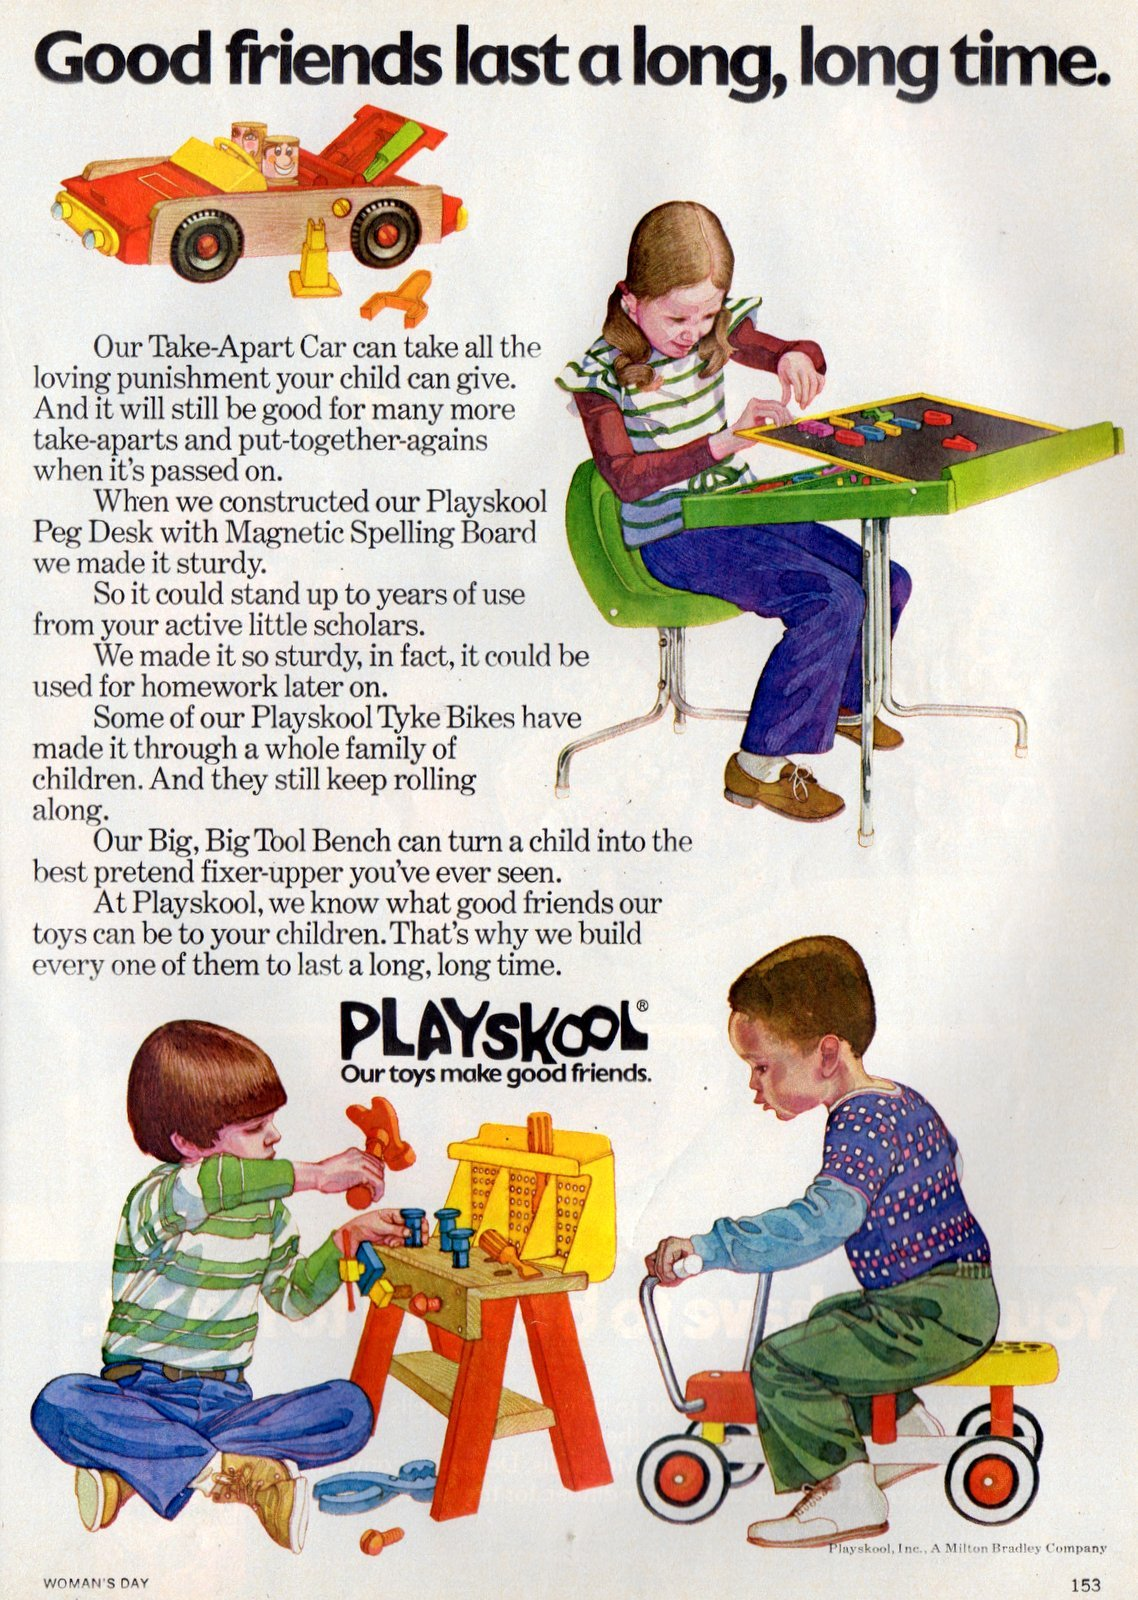 Vintage 1970s Playskool toys - Take-apart car - Tyke Bikes - Tool Bench - Desk